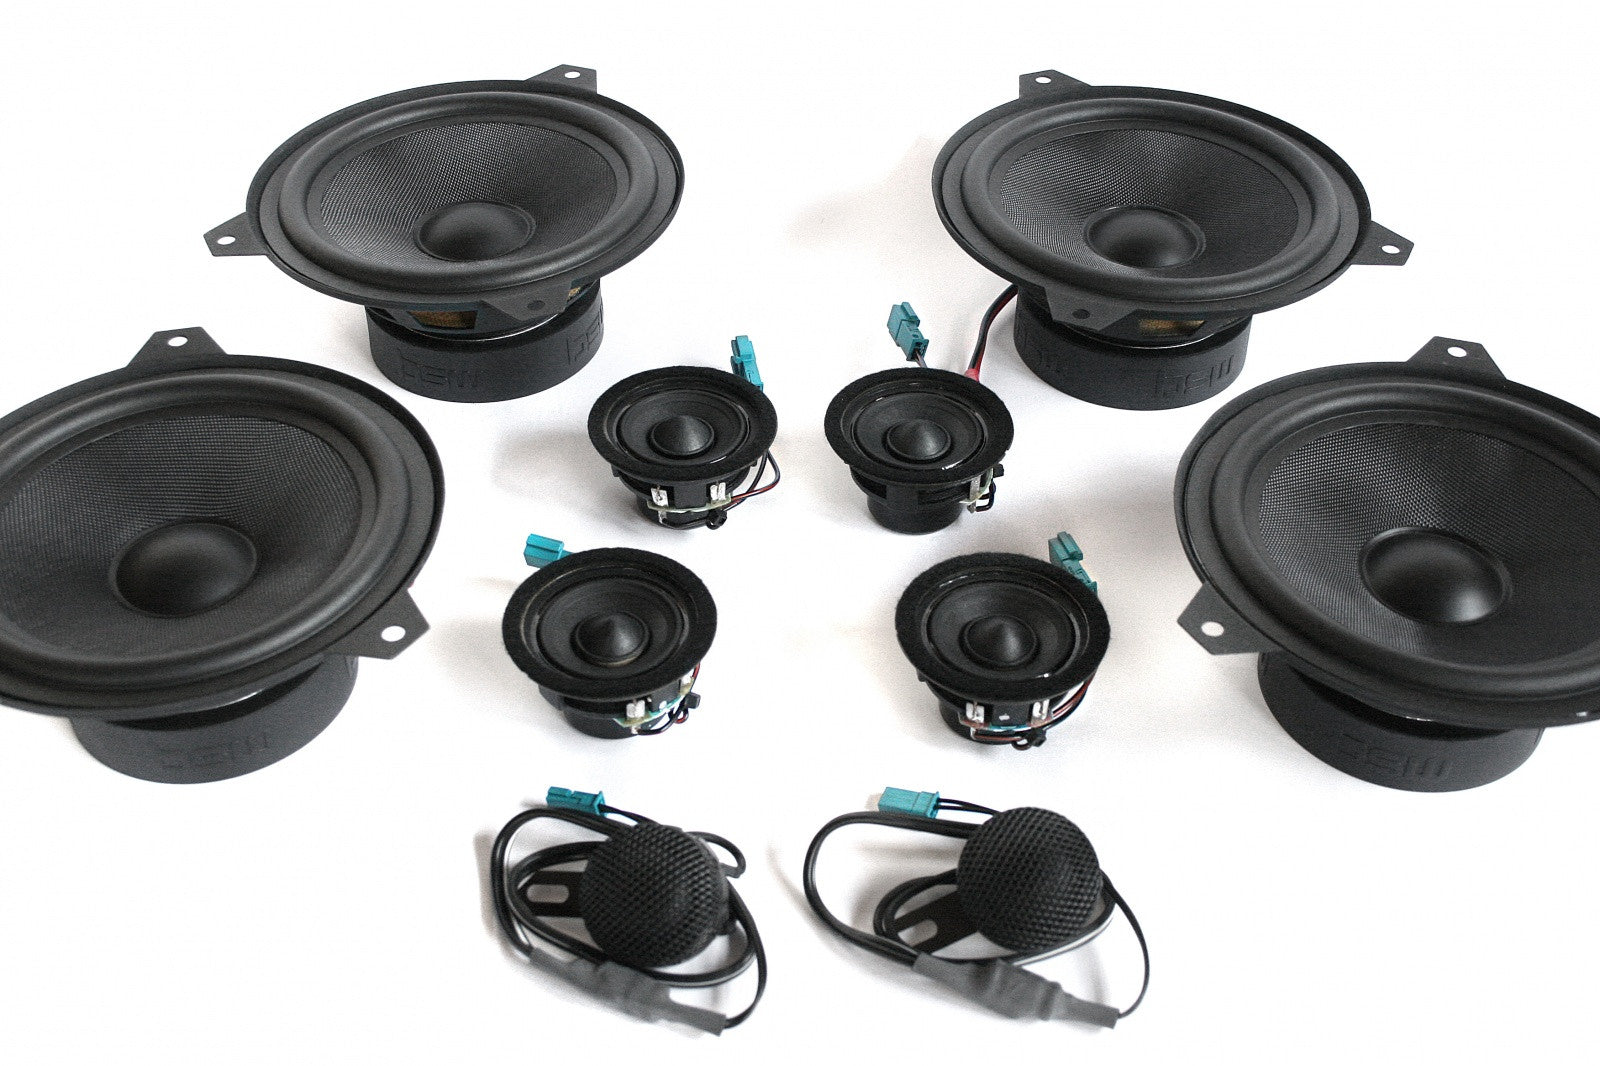 BMW Speaker Upgrade for E46 Sedan/Wagon with Standard Hi-Fi